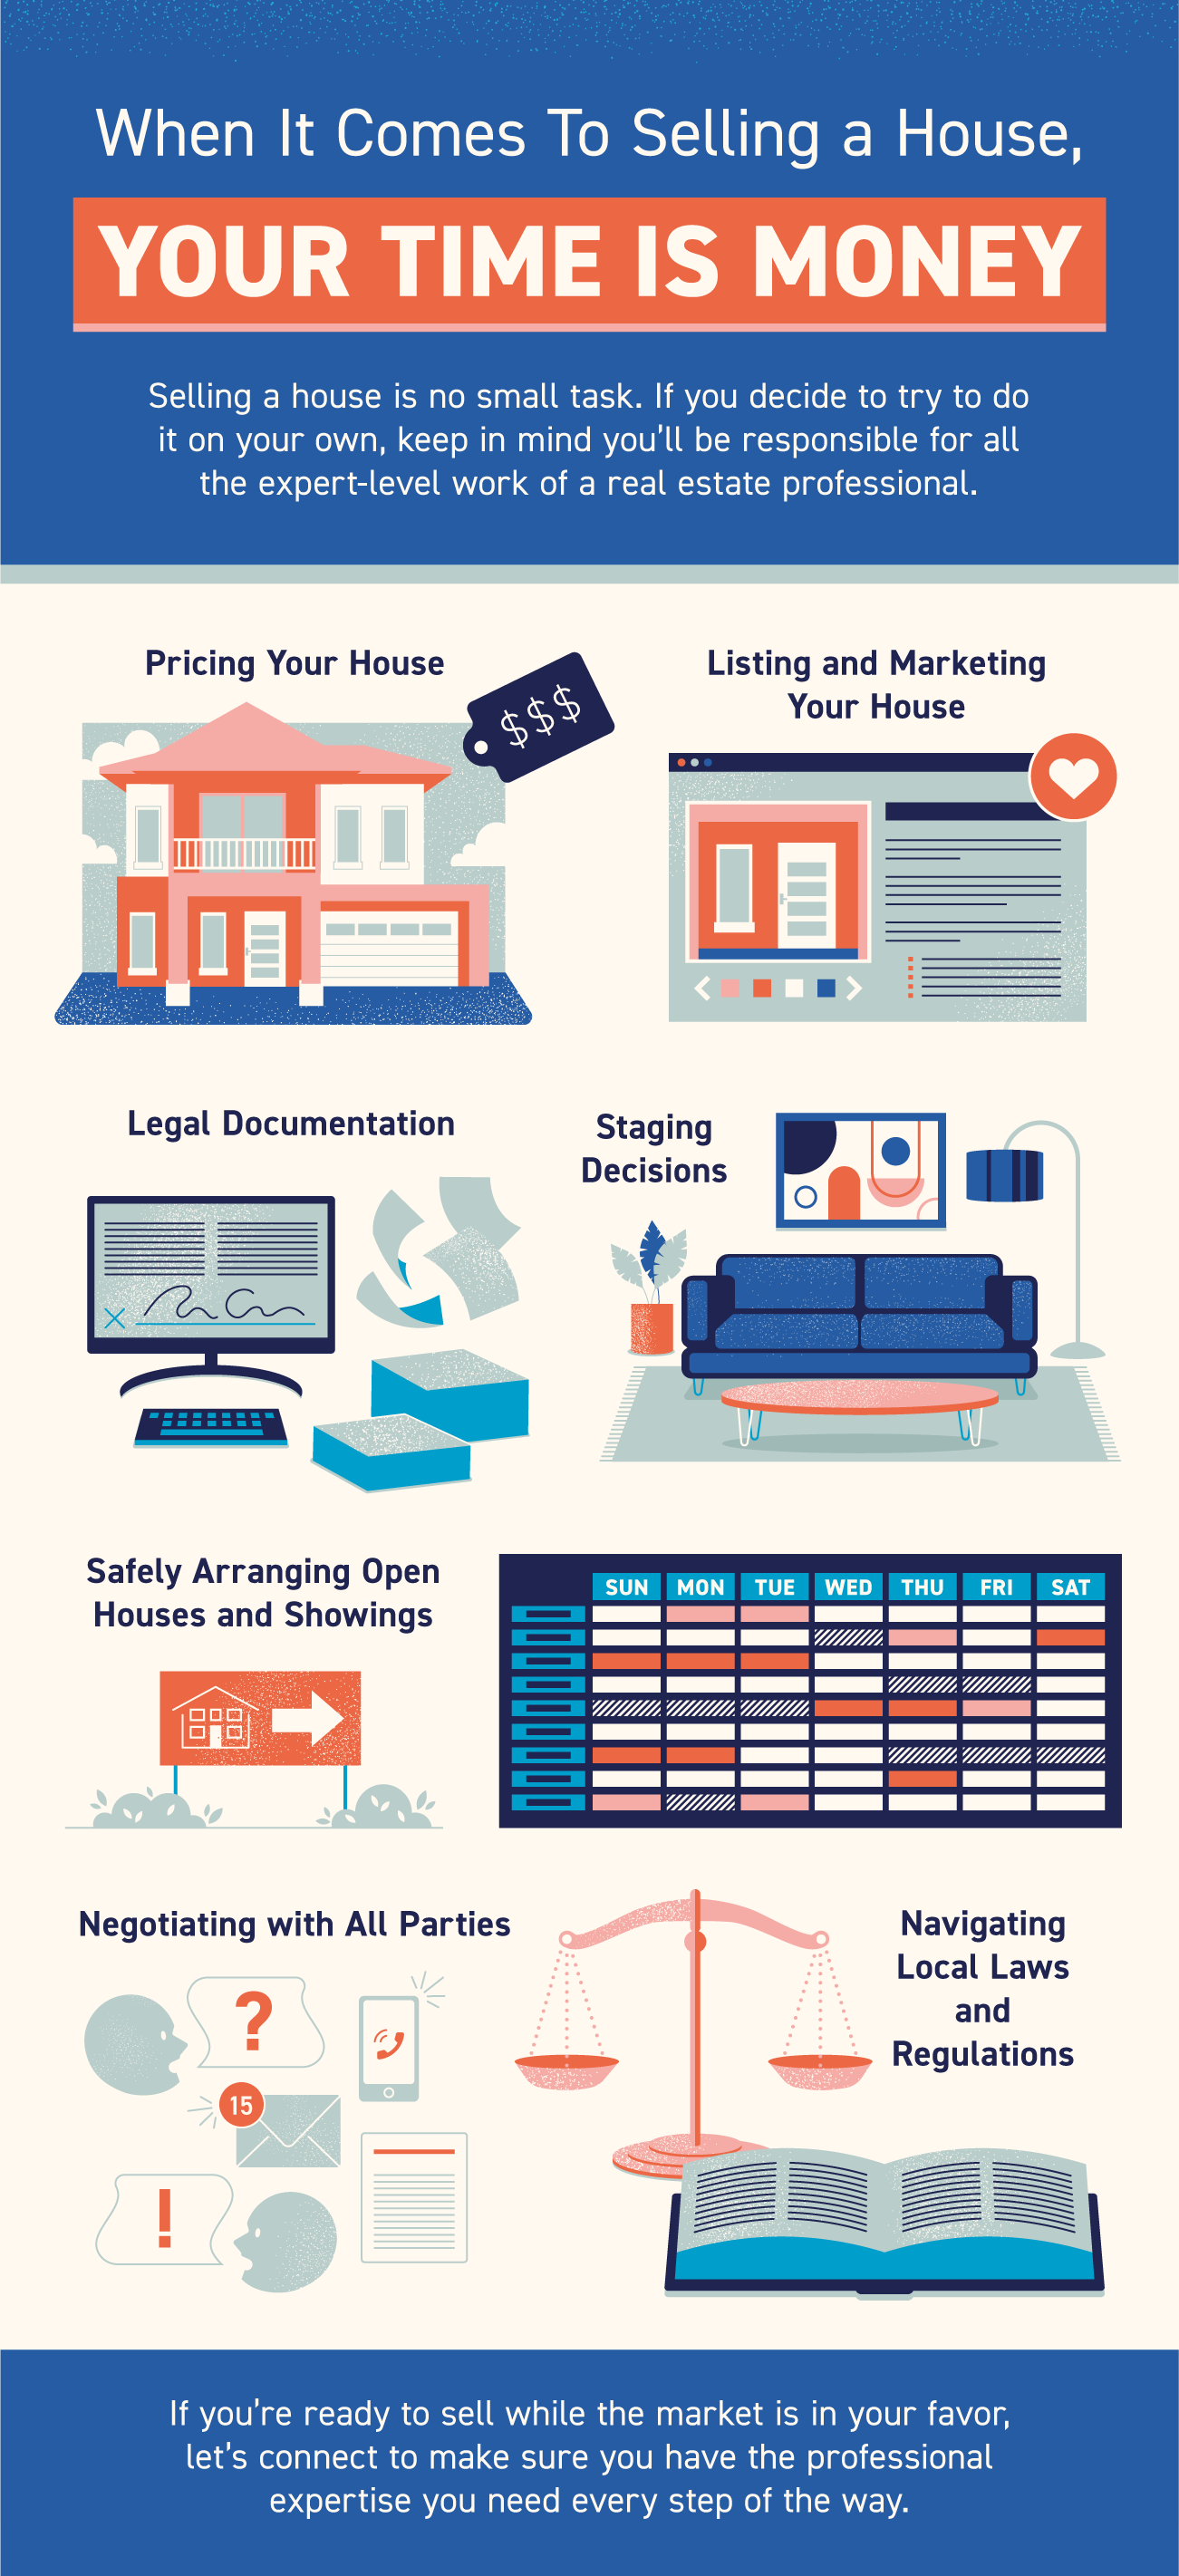 When It Comes To Selling a House, Your Time Is Money [INFOGRAPHIC]   Simplifying The Market